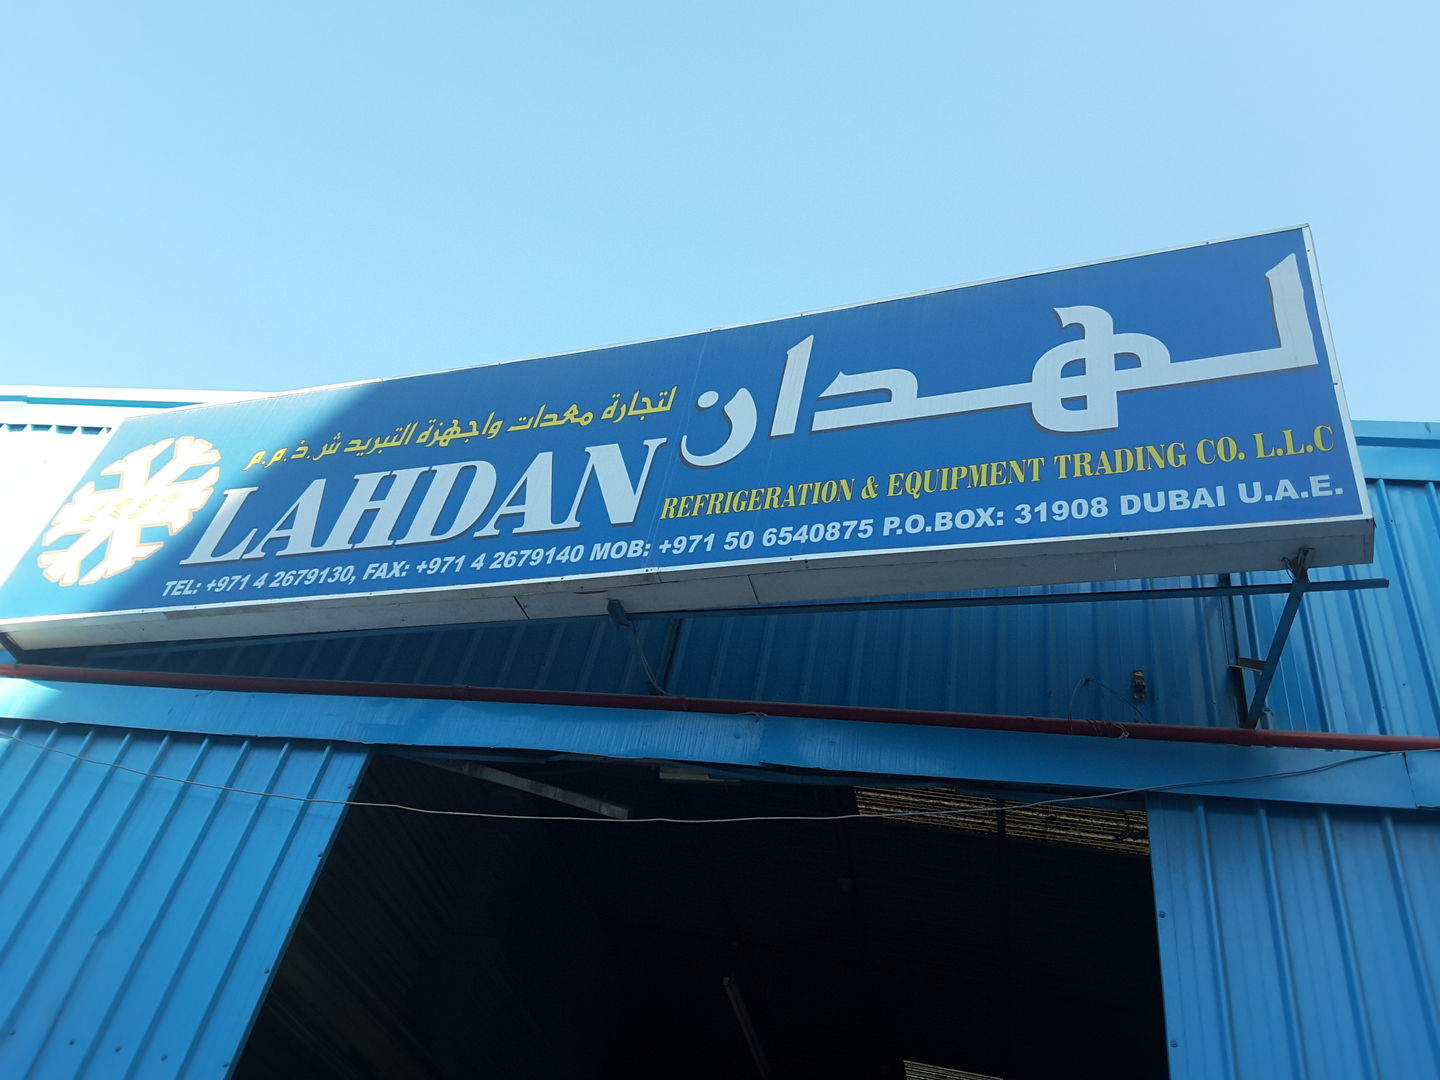 HiDubai-business-lahdan-refridgeration-equipment-trading-b2b-services-distributors-wholesalers-al-qusais-industrial-1-dubai-2